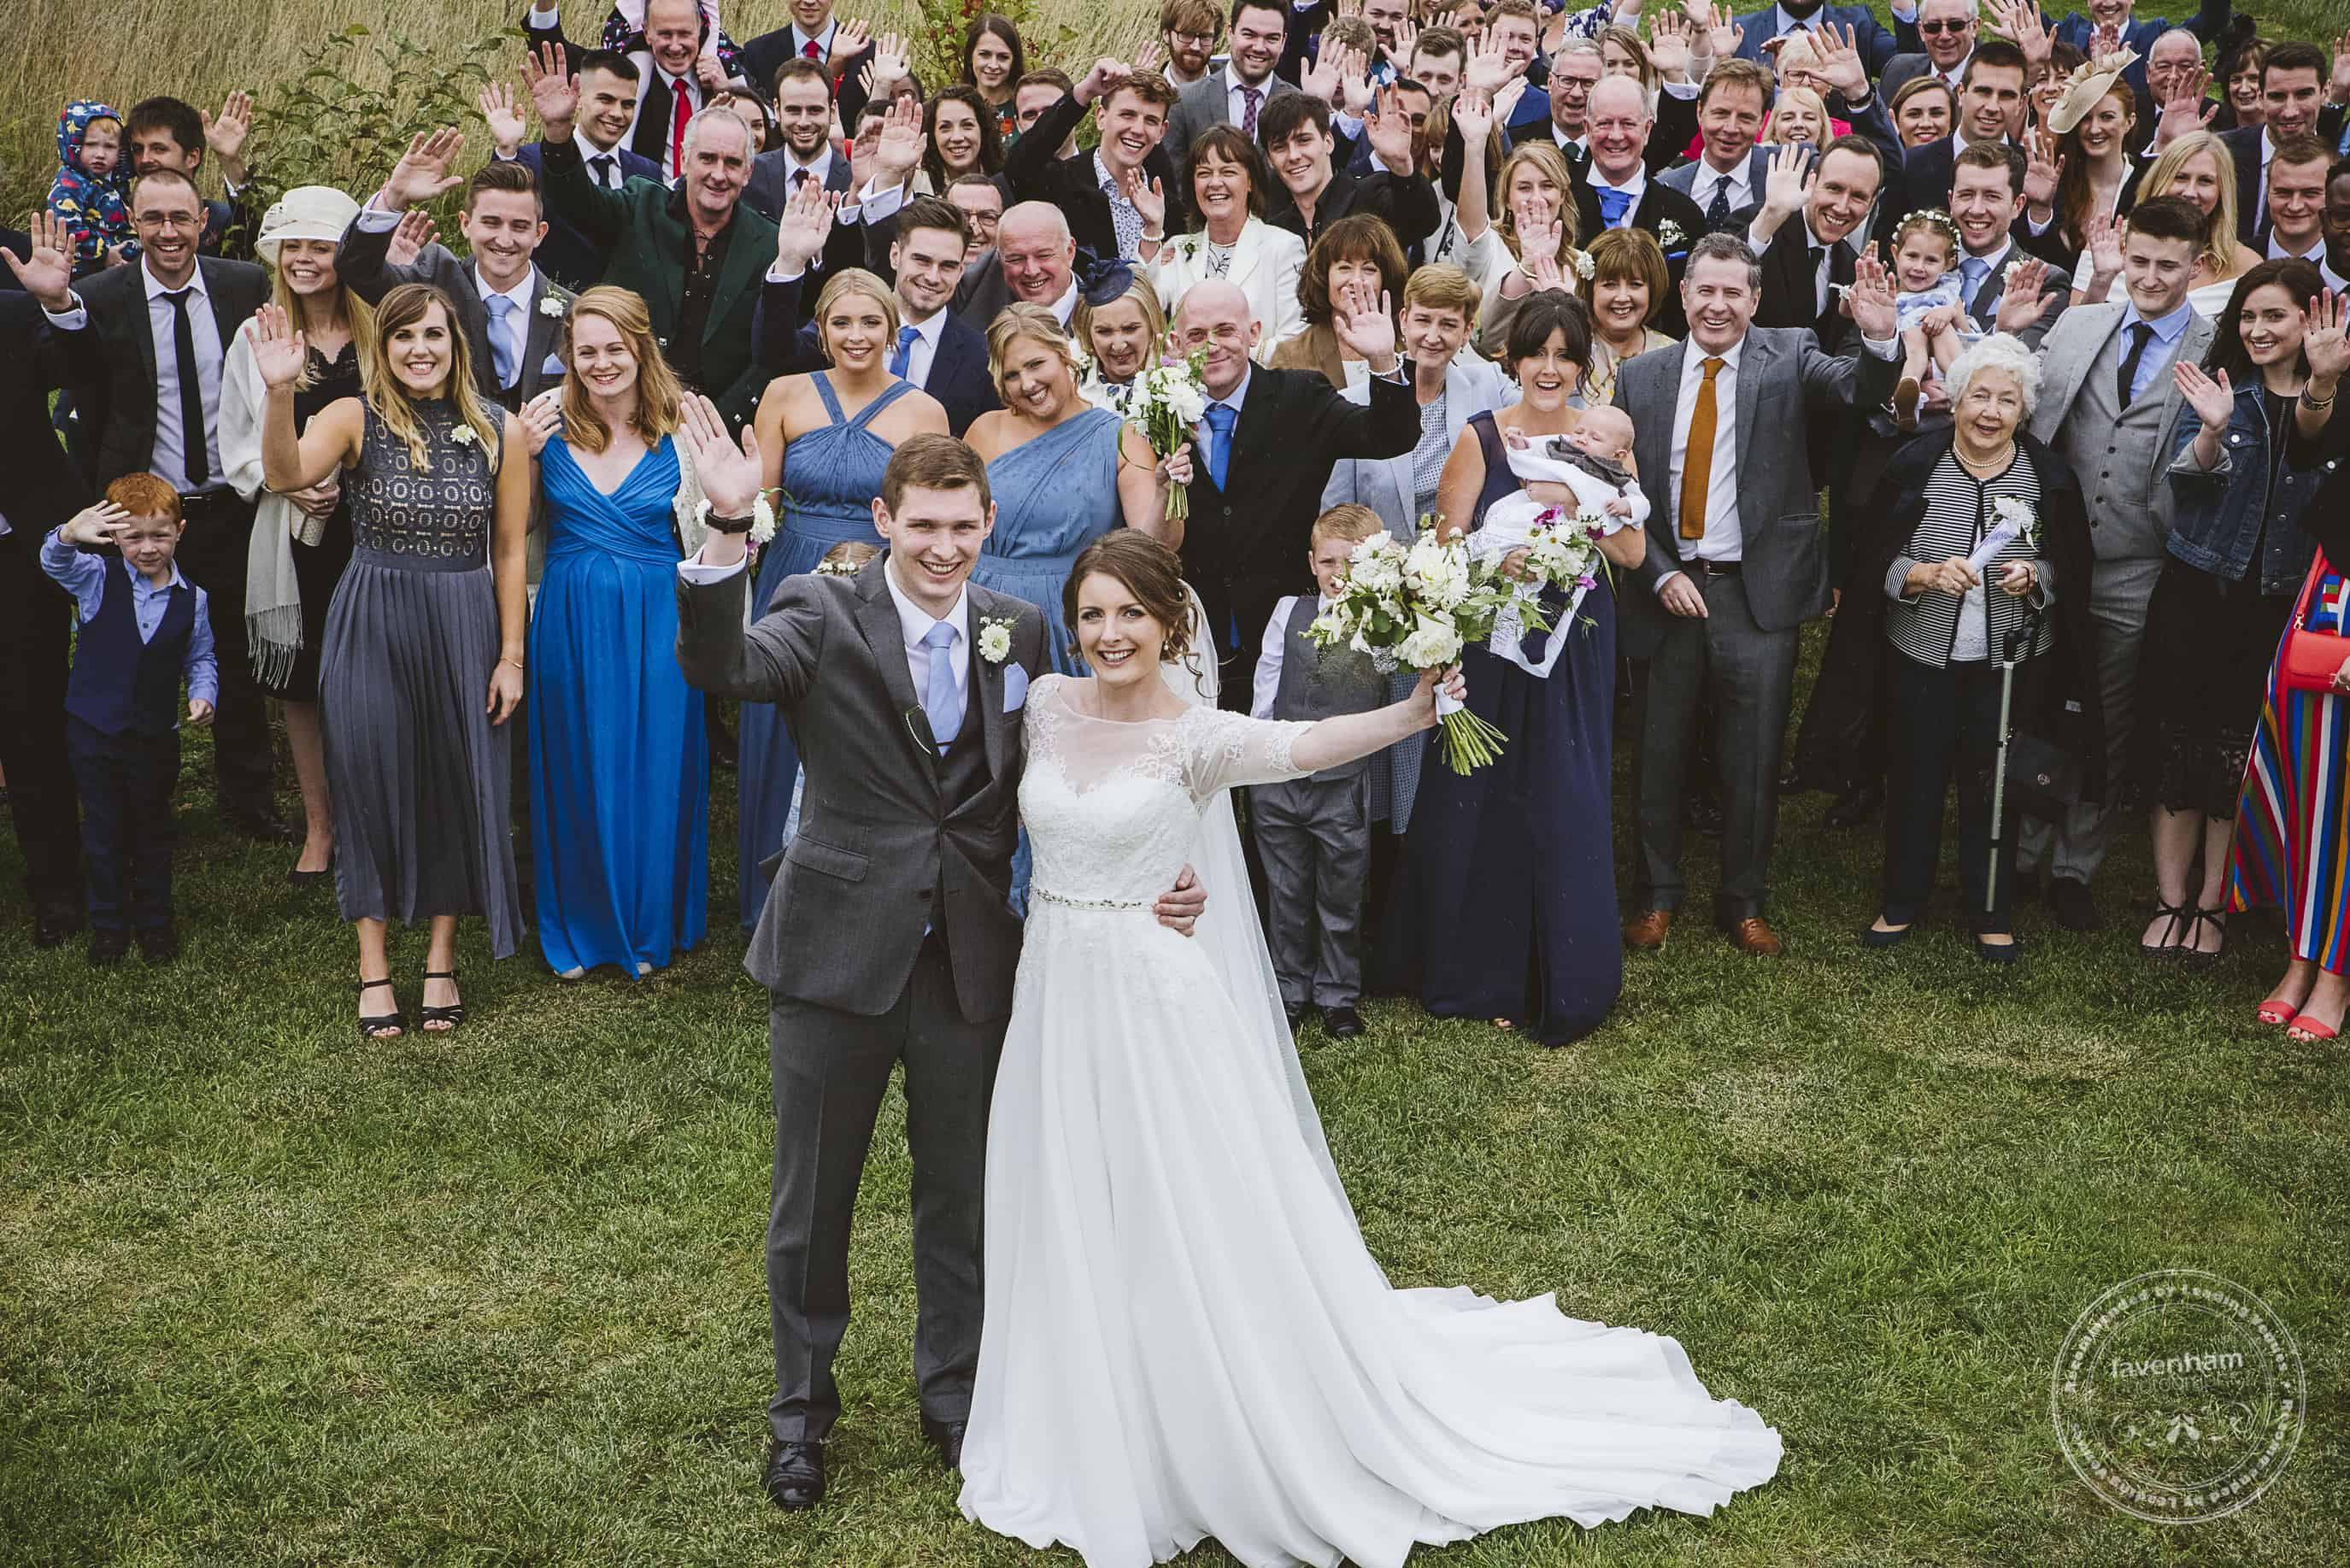 220918 Alpheton Barn Wedding Photography by Lavenham Photographic 072